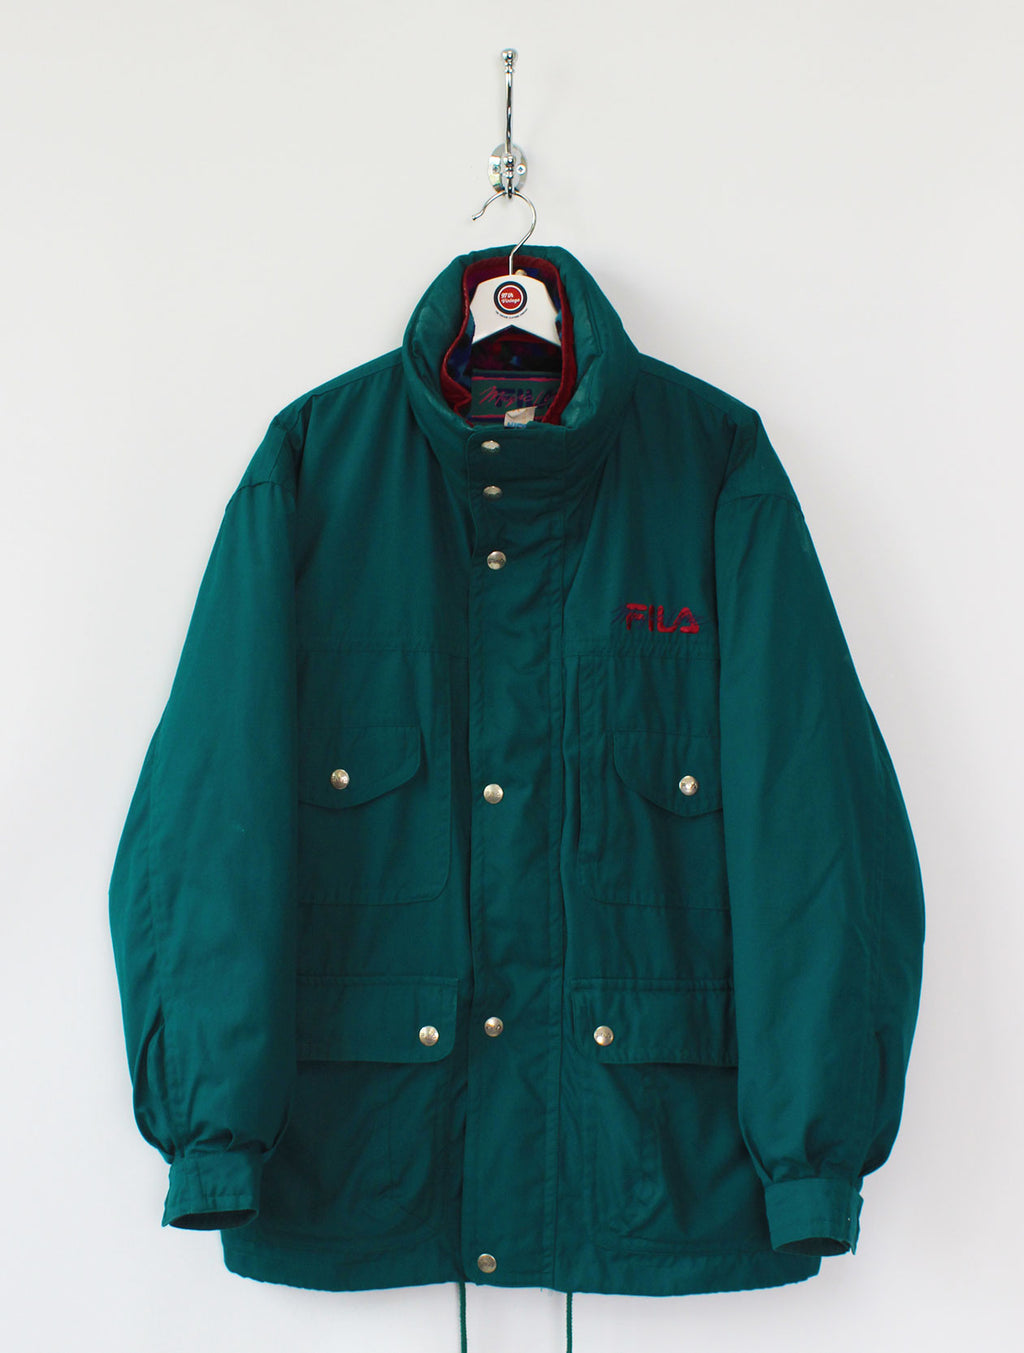 Fila Magic Lined Fleece Lined Jacket (L)